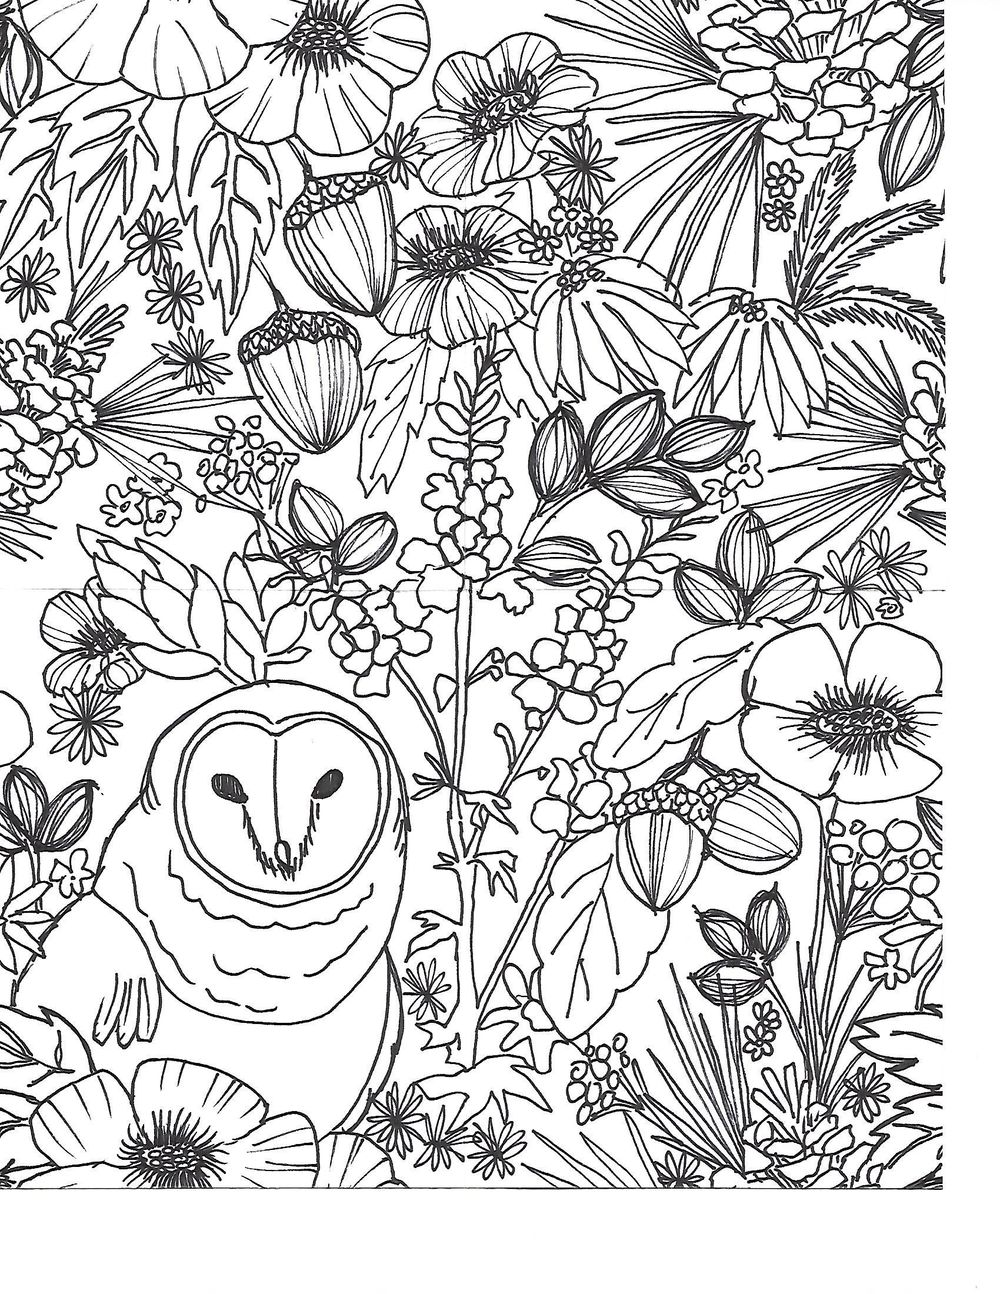 Owl Pattern - image 2 - student project